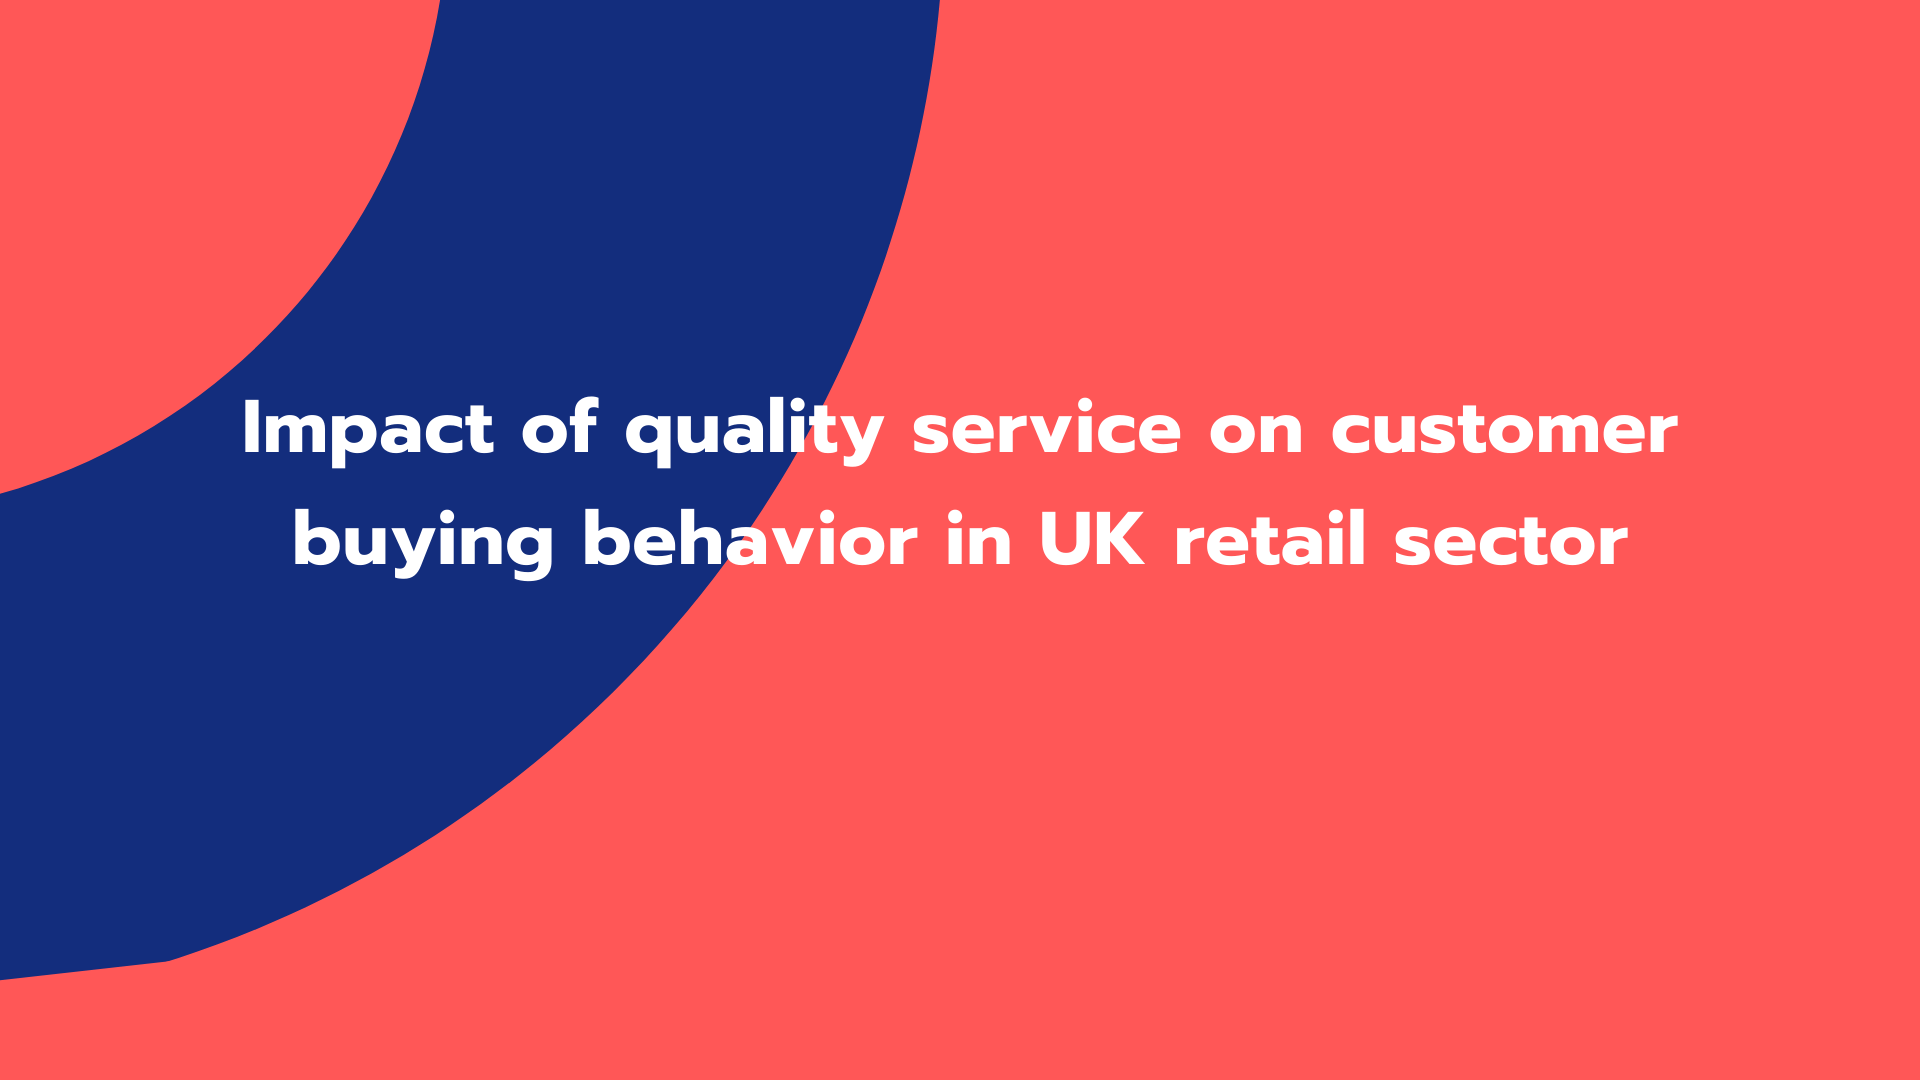 Impact of quality service on customer buying behavior in UK retail sector